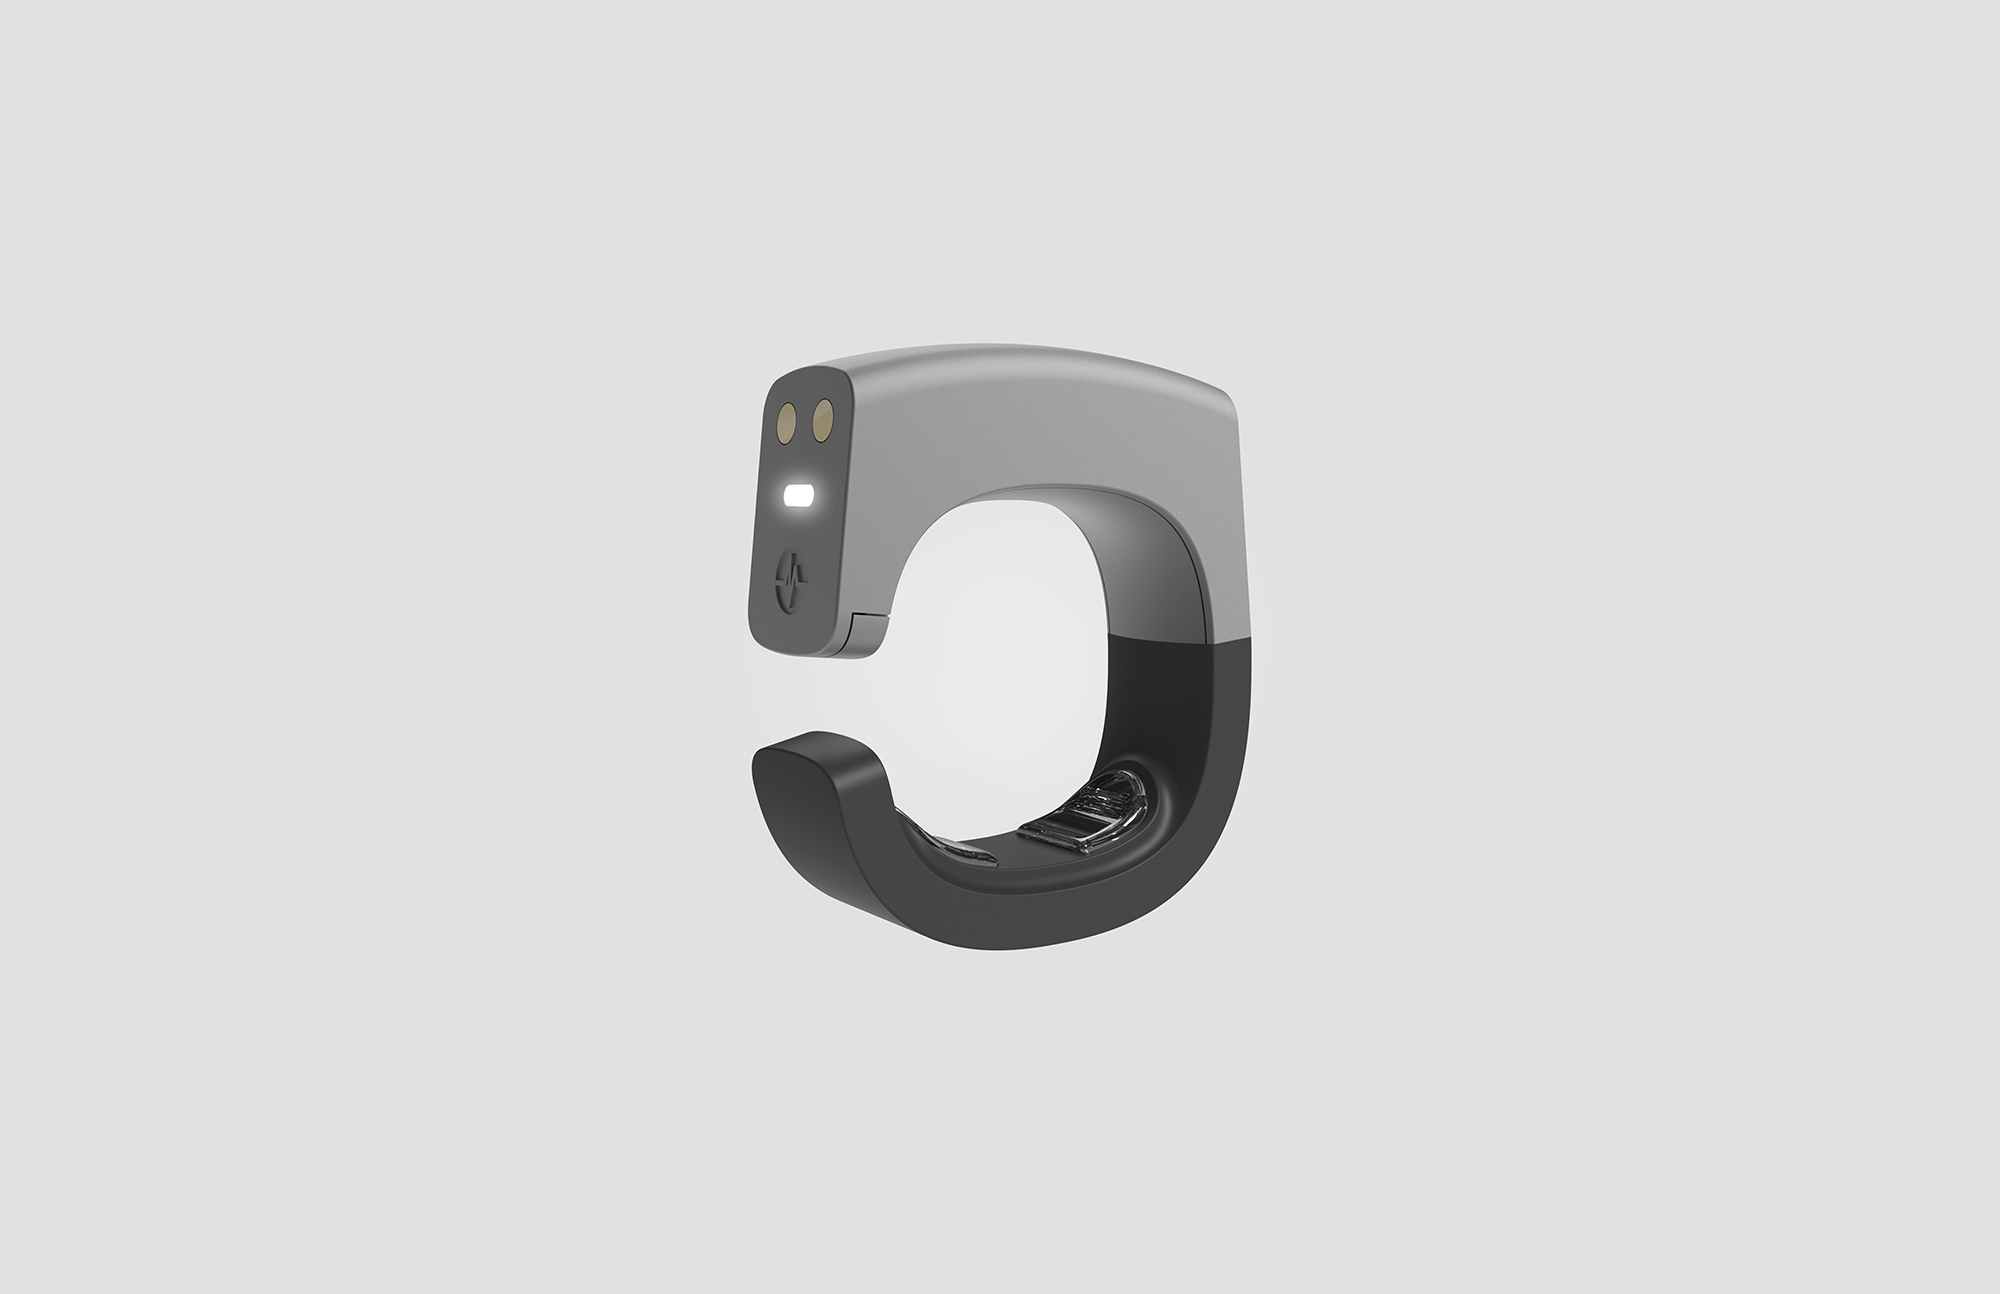 PPG RING Maxim Integrated